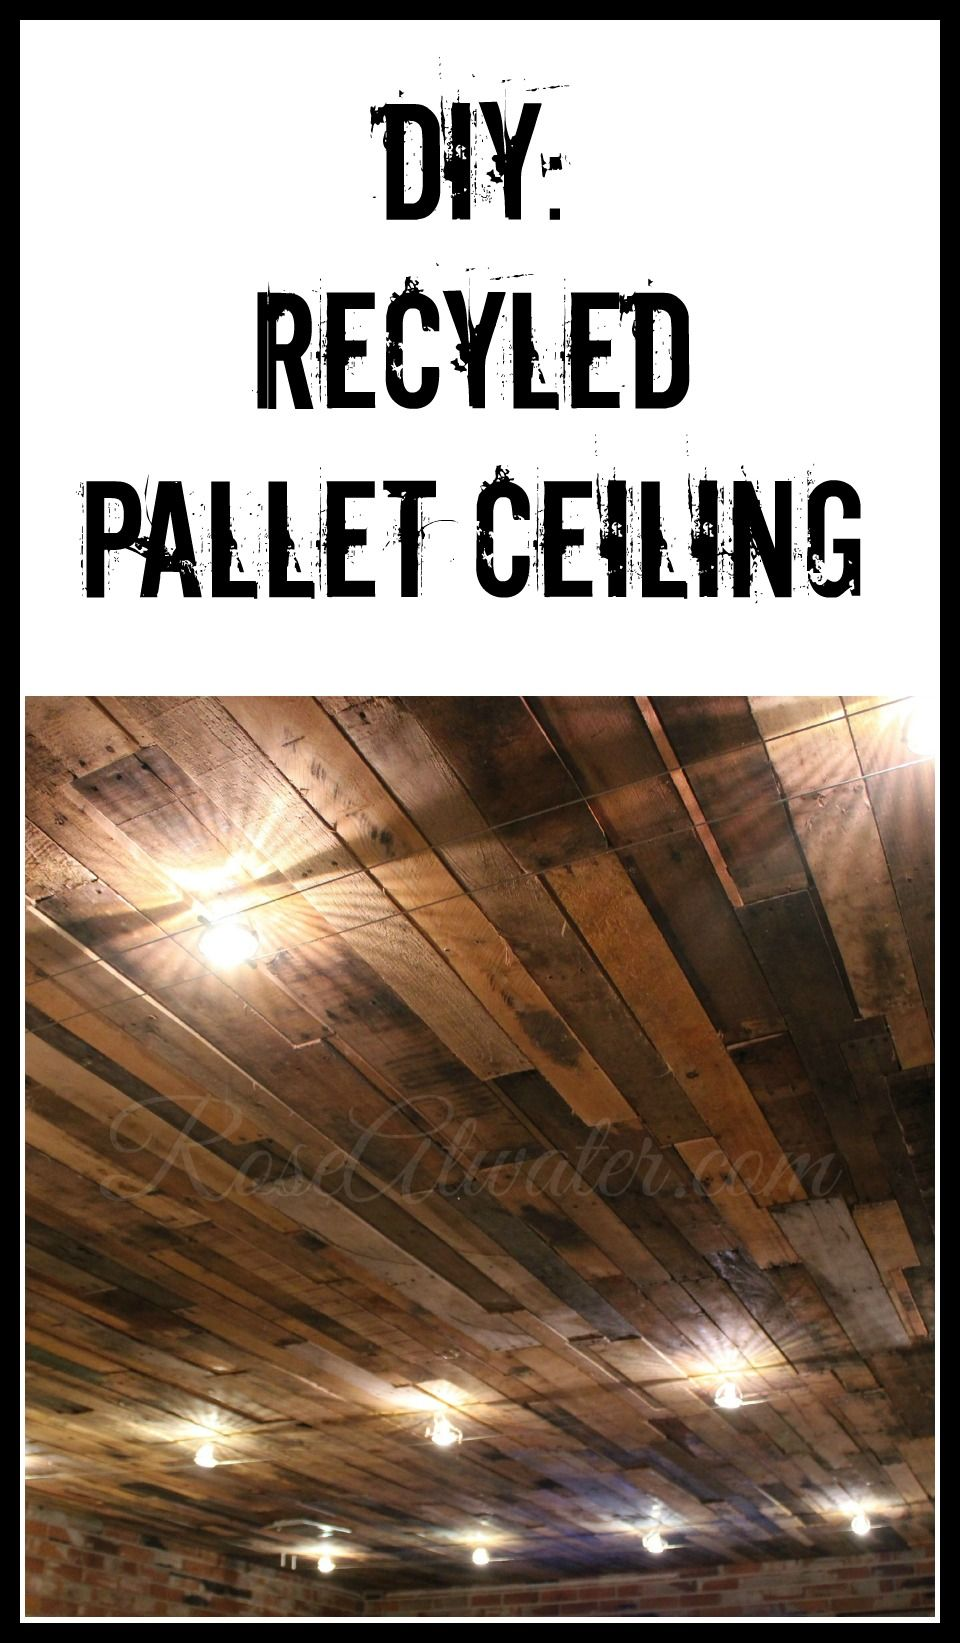 Diy Recycled Pallet Ceiling Pallet Ceiling Basement